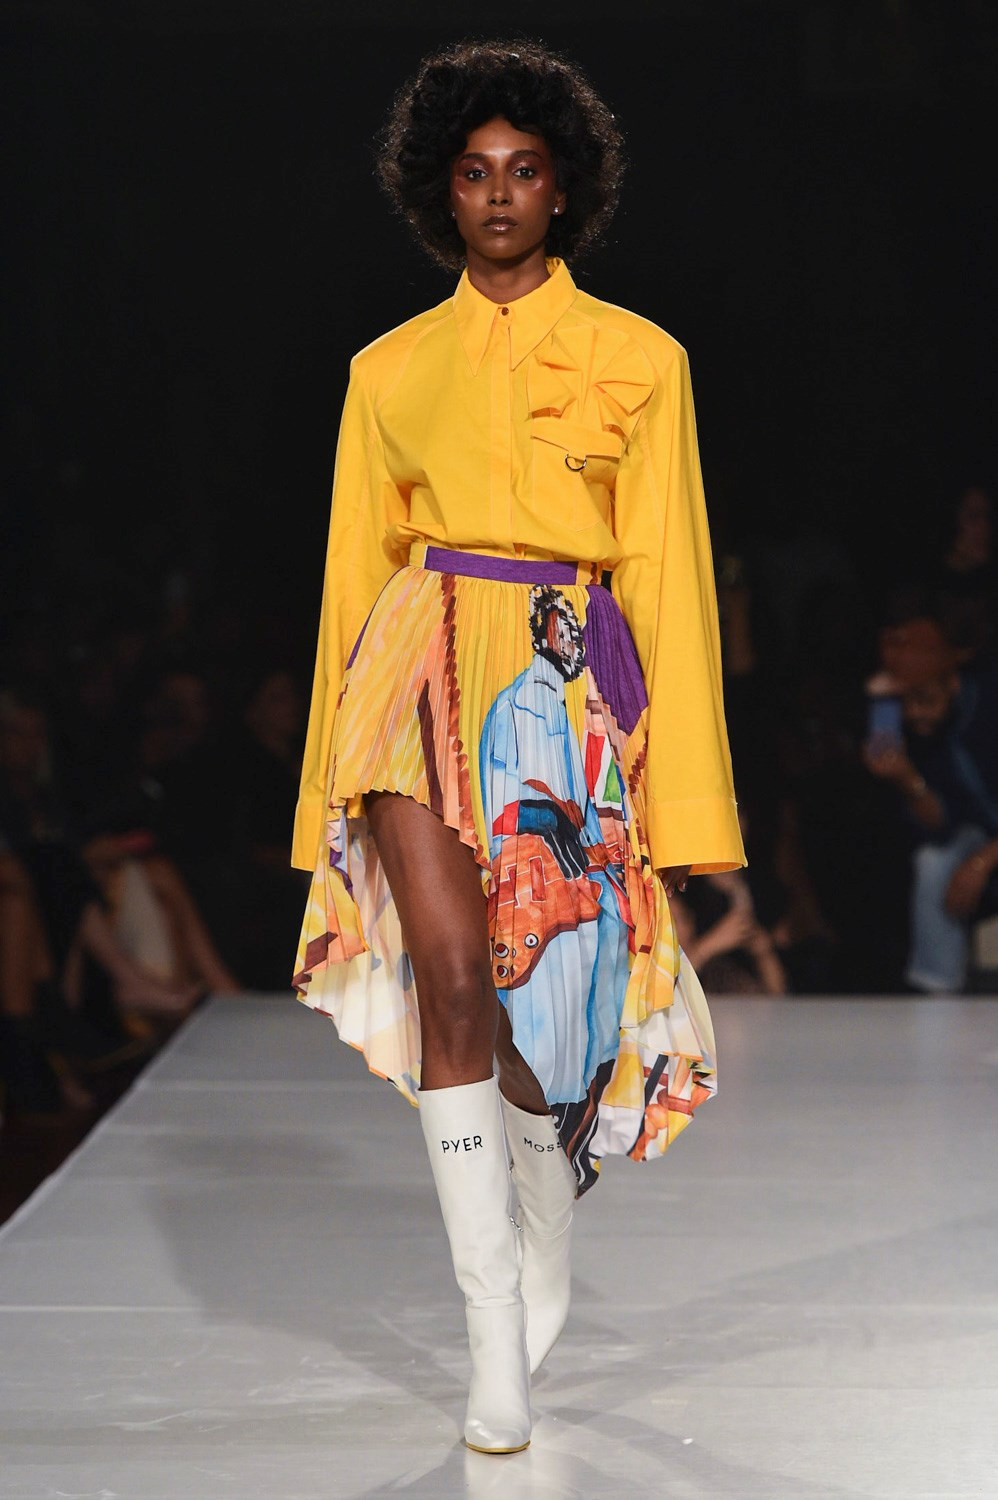 New York Top 10 Spring 2020 Fashion Shows